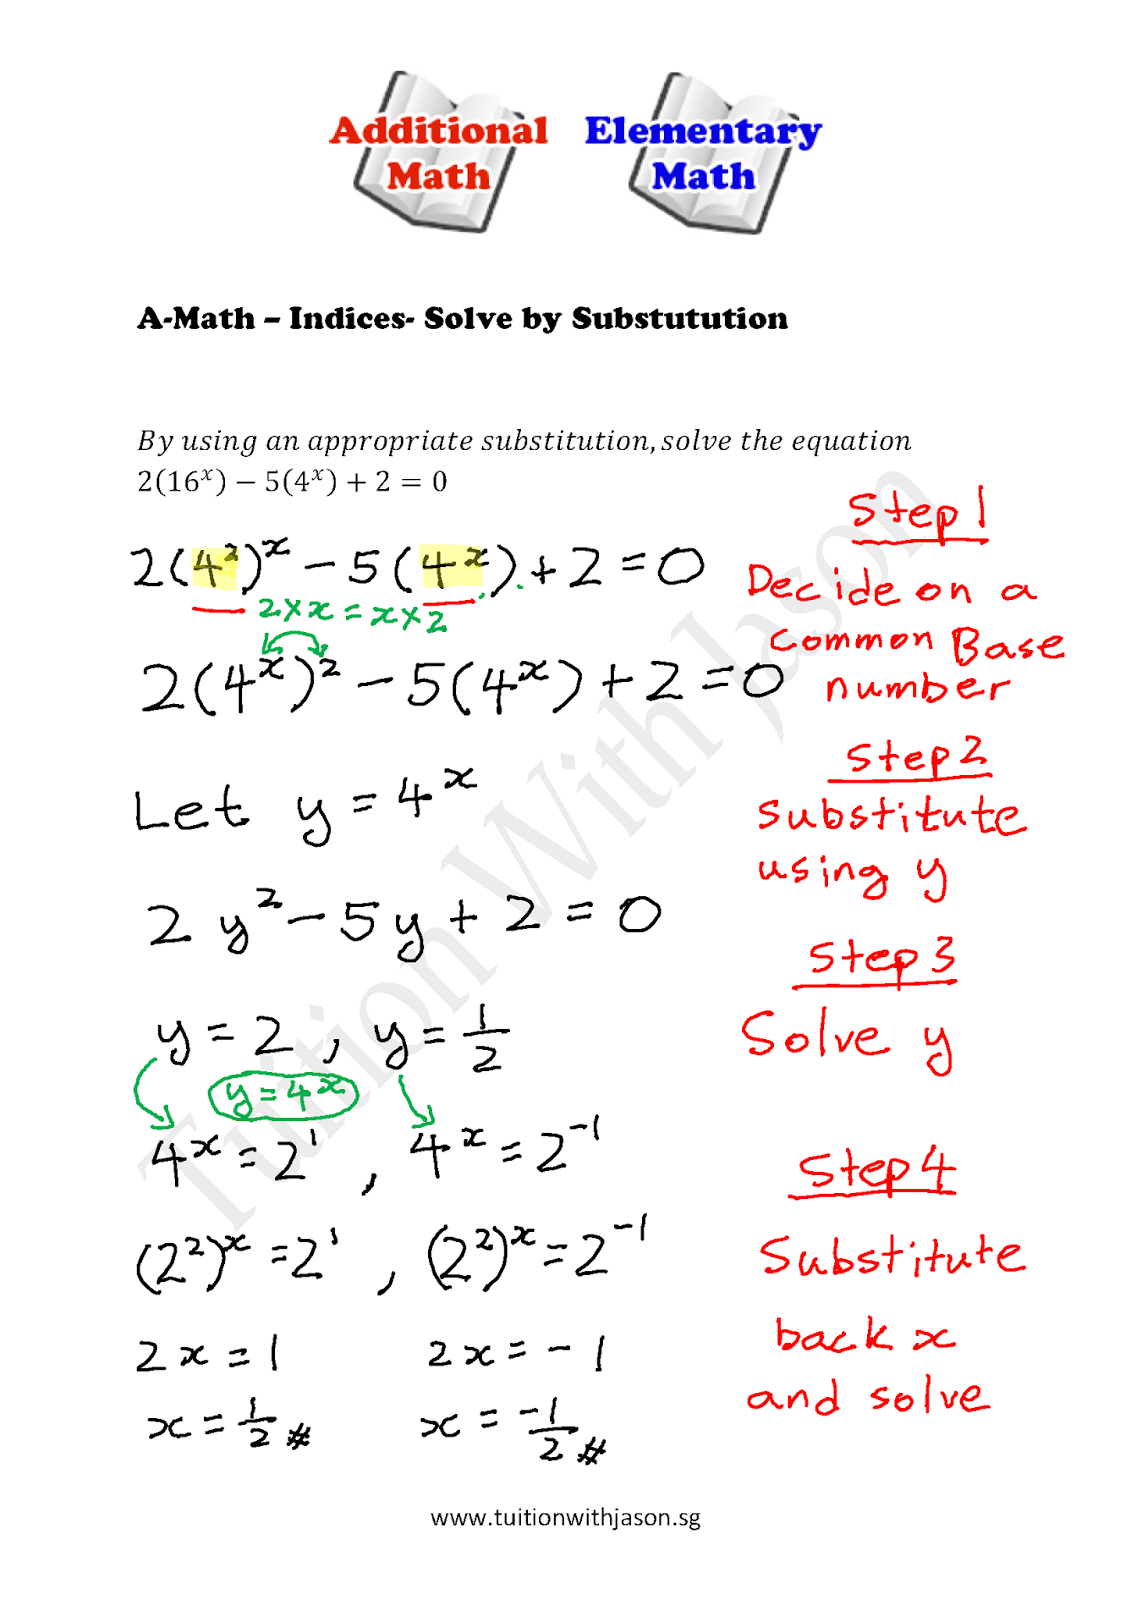 A-Math-Indices-Solve by Substitution   Singapore Additional